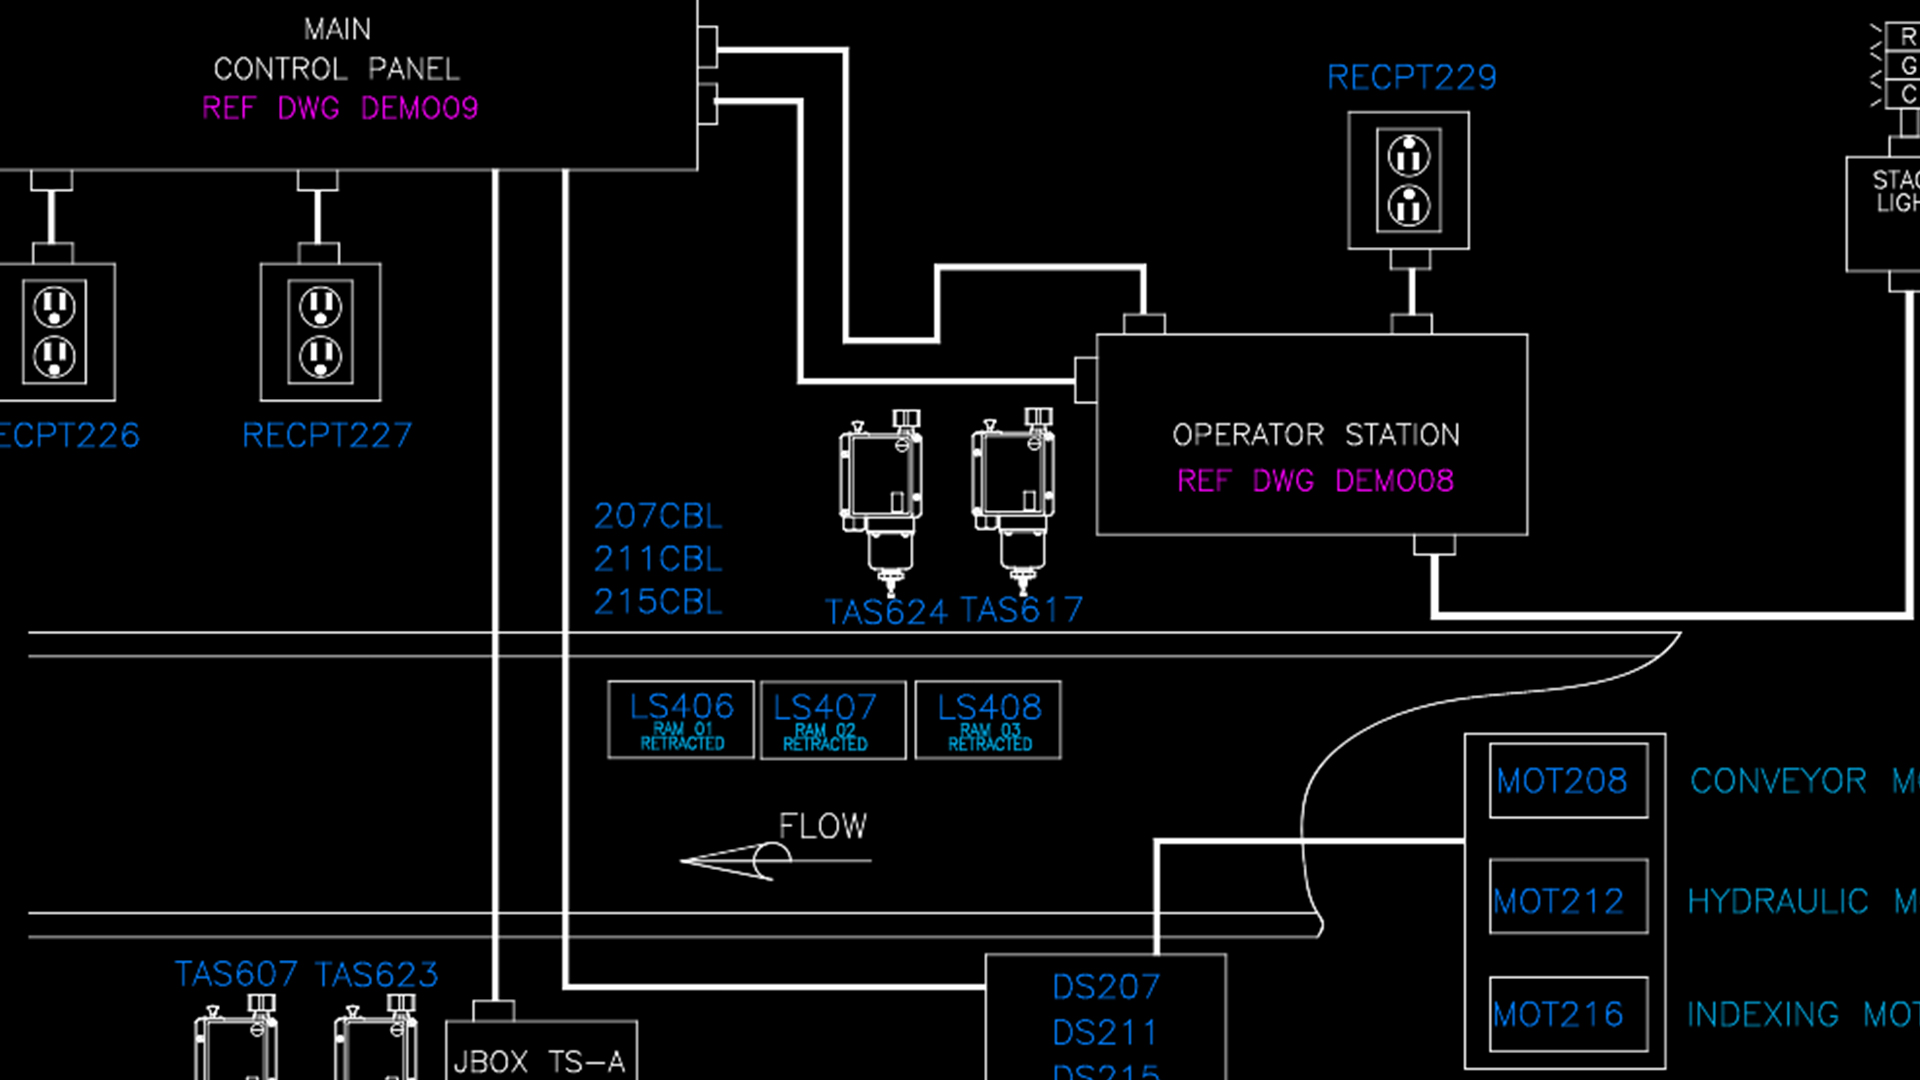 Autocad Electrical Implementing Plcs